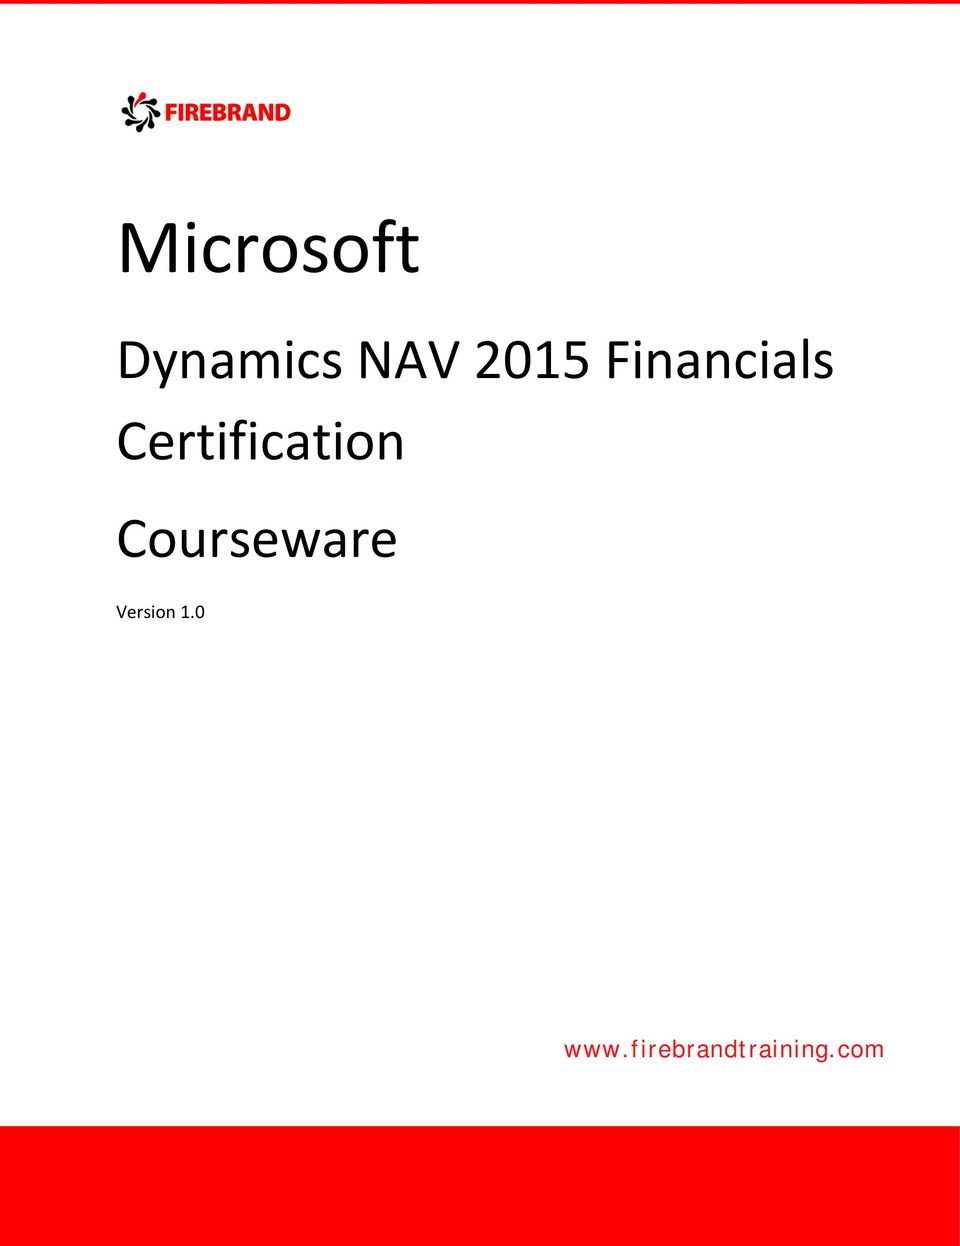 Microsoft Dynamics Nav 2015 Financials Certification Courseware